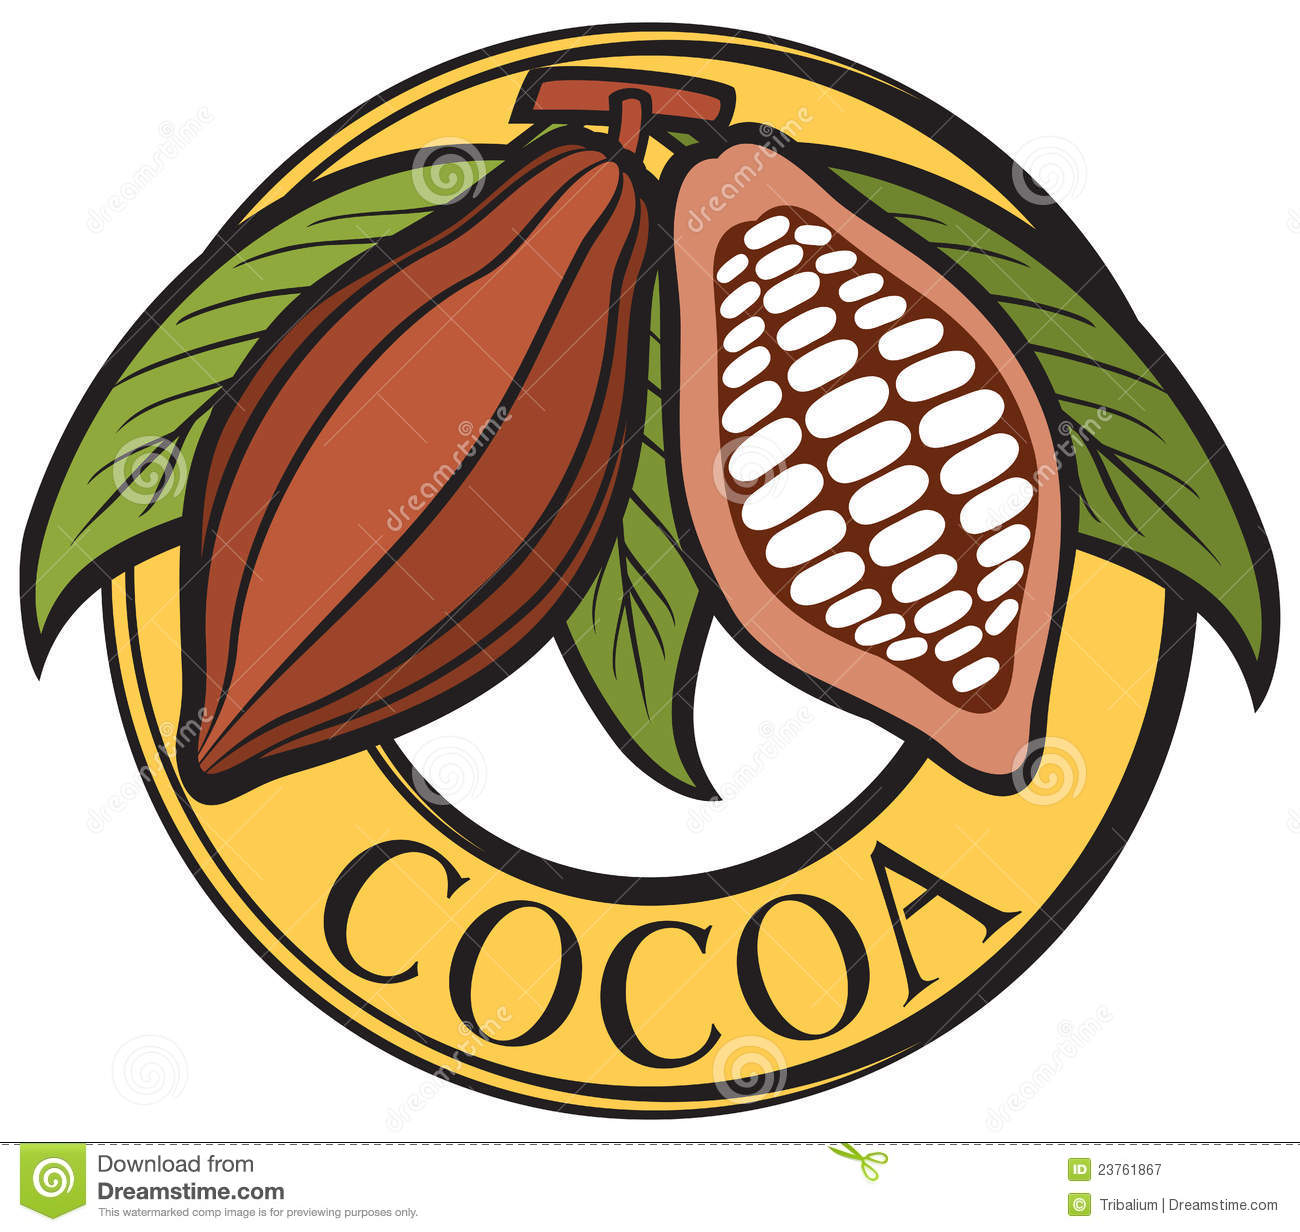 Cocoa Beans Label Stock Vector. Illustration Of